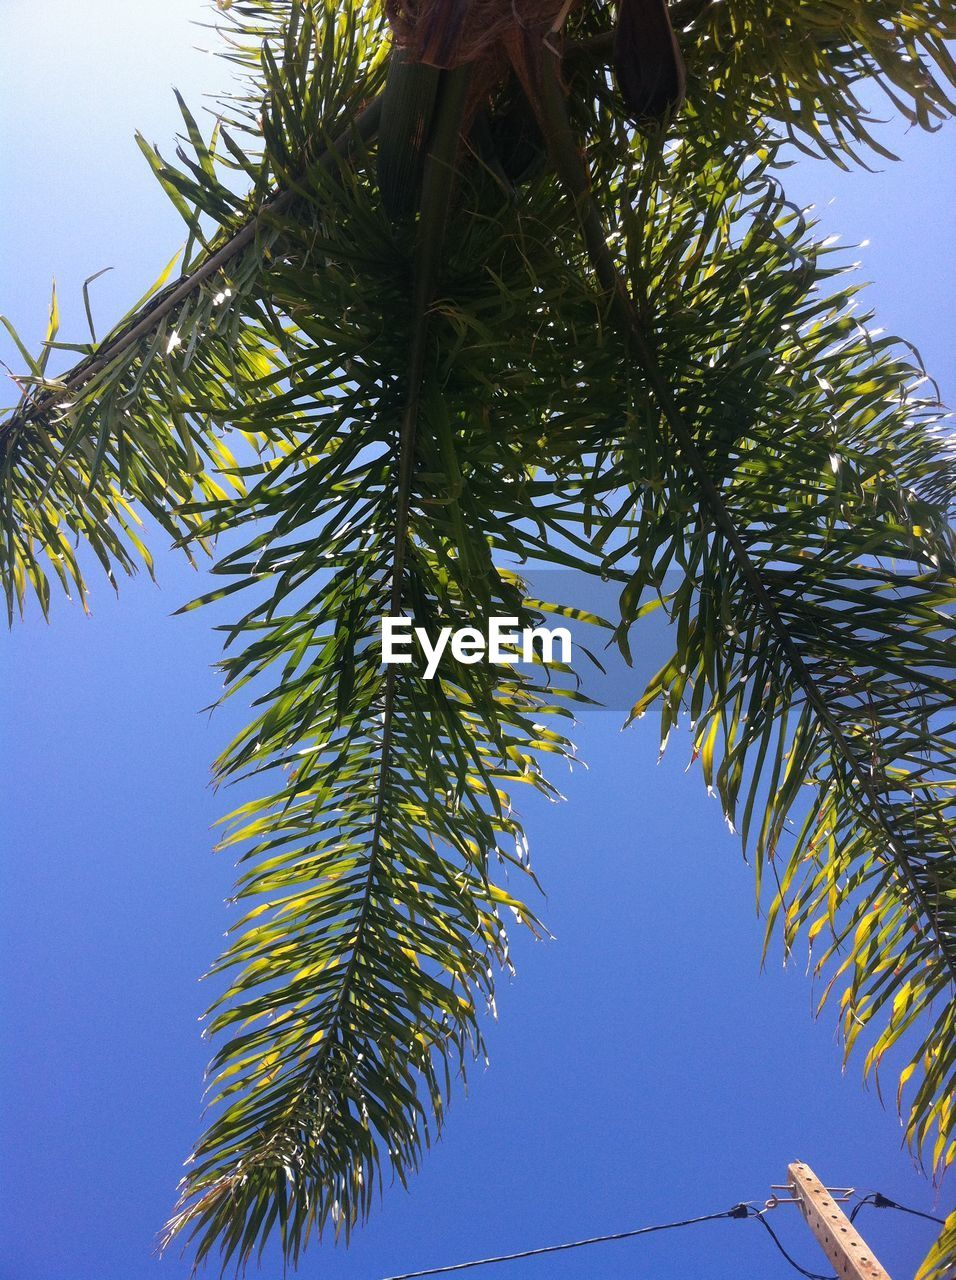 tree, plant, sky, growth, low angle view, green color, nature, day, no people, clear sky, leaf, beauty in nature, palm tree, outdoors, branch, tropical climate, plant part, sunlight, tranquility, blue, palm leaf, coniferous tree